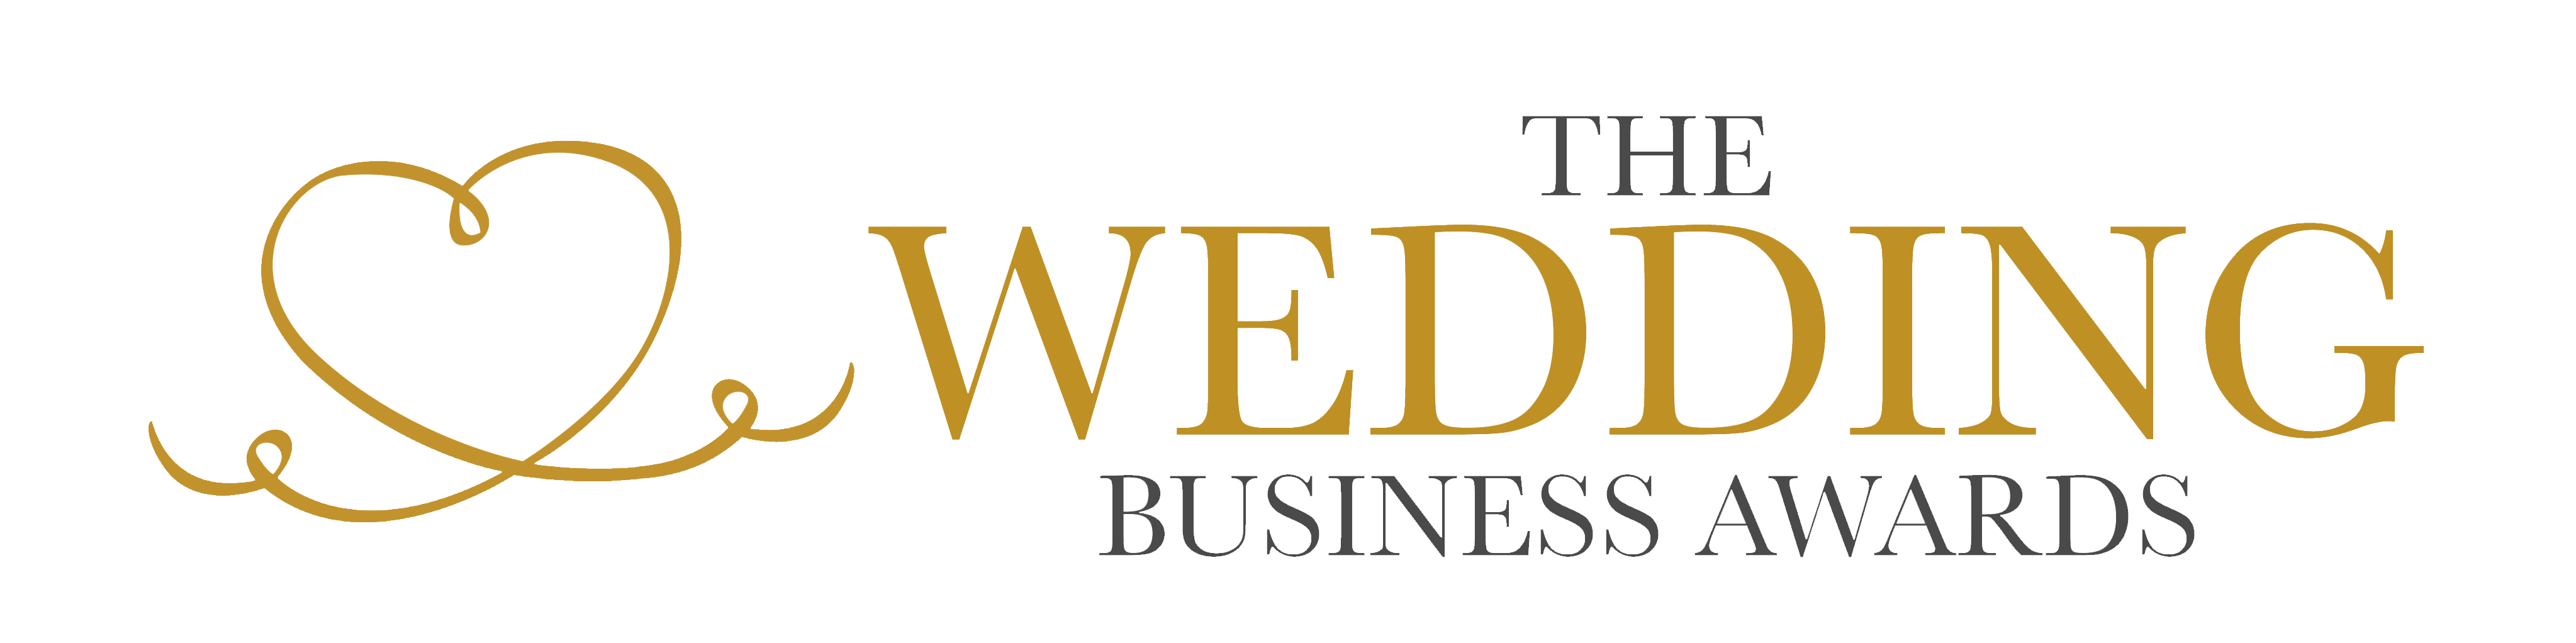 Home - The Wedding Business Awards